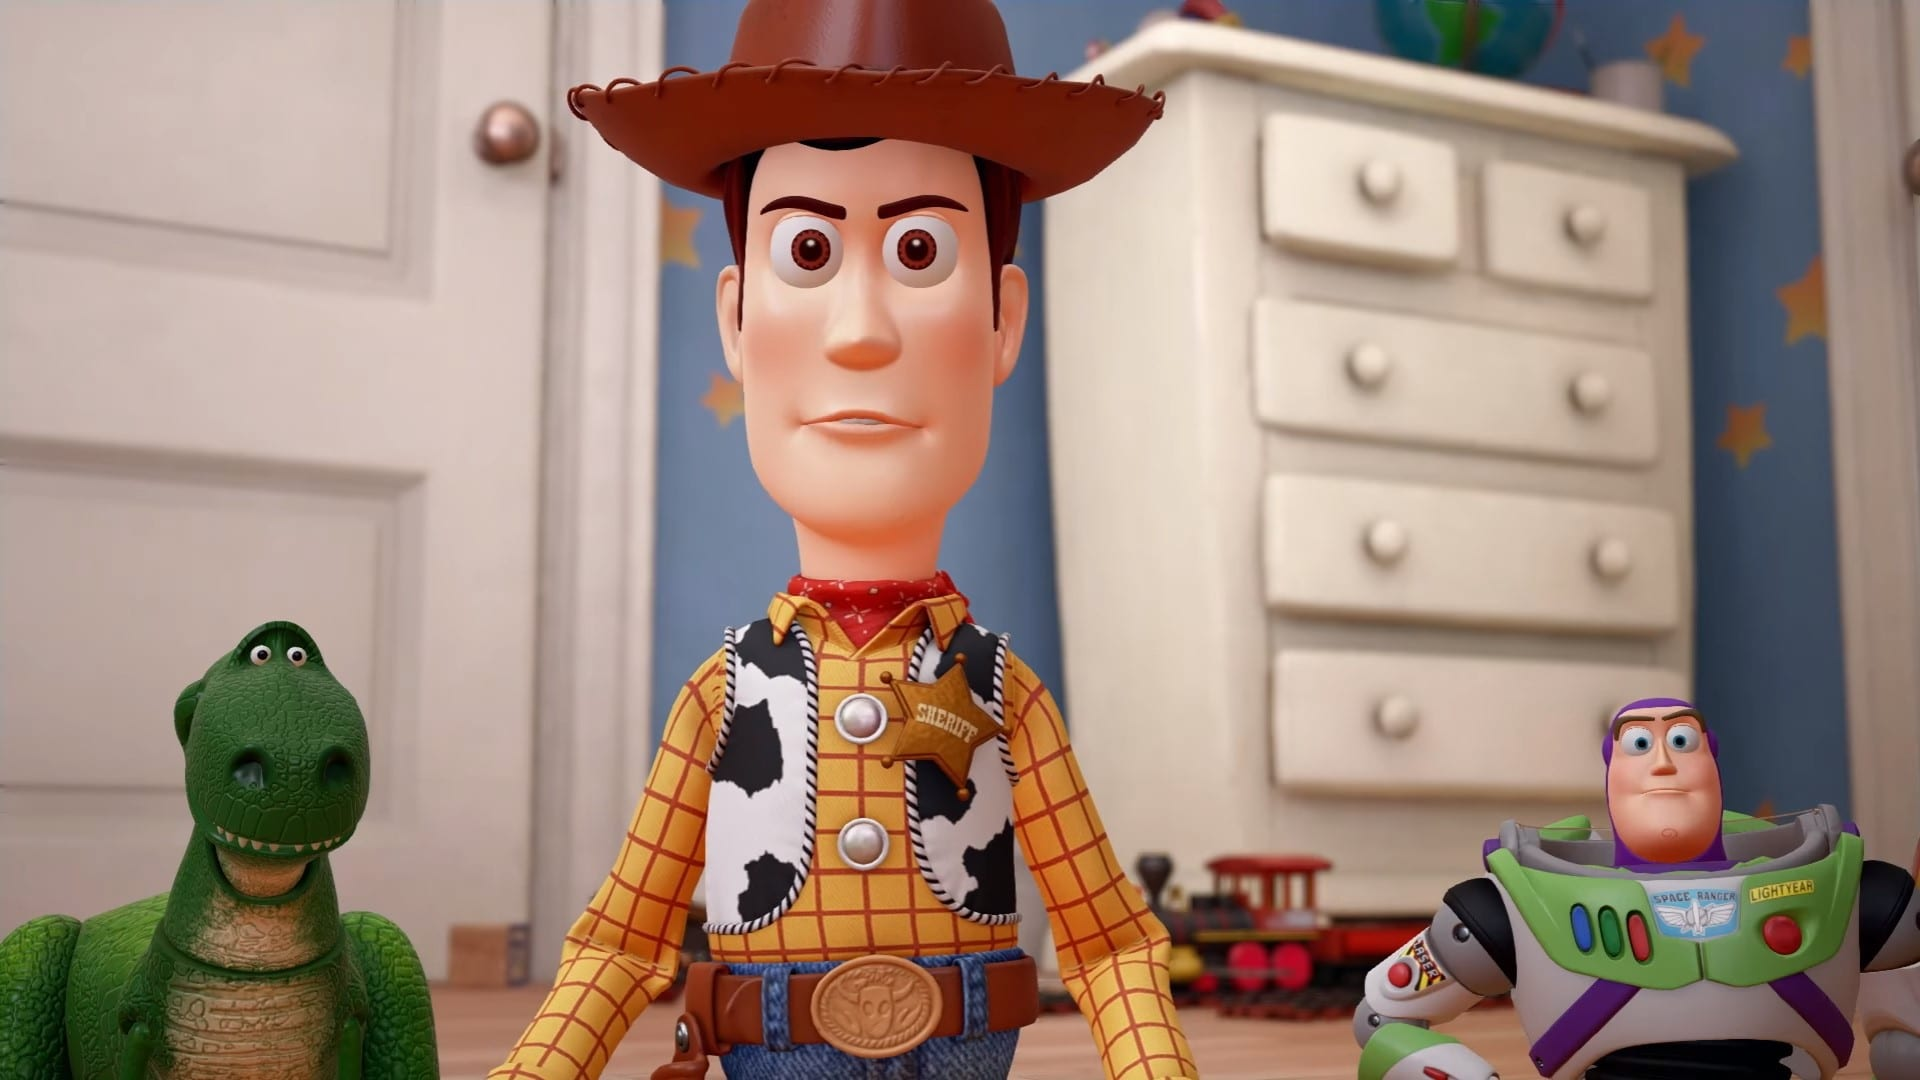 Kingdom Hearts III Coming 2018, Toy Story World Revealed